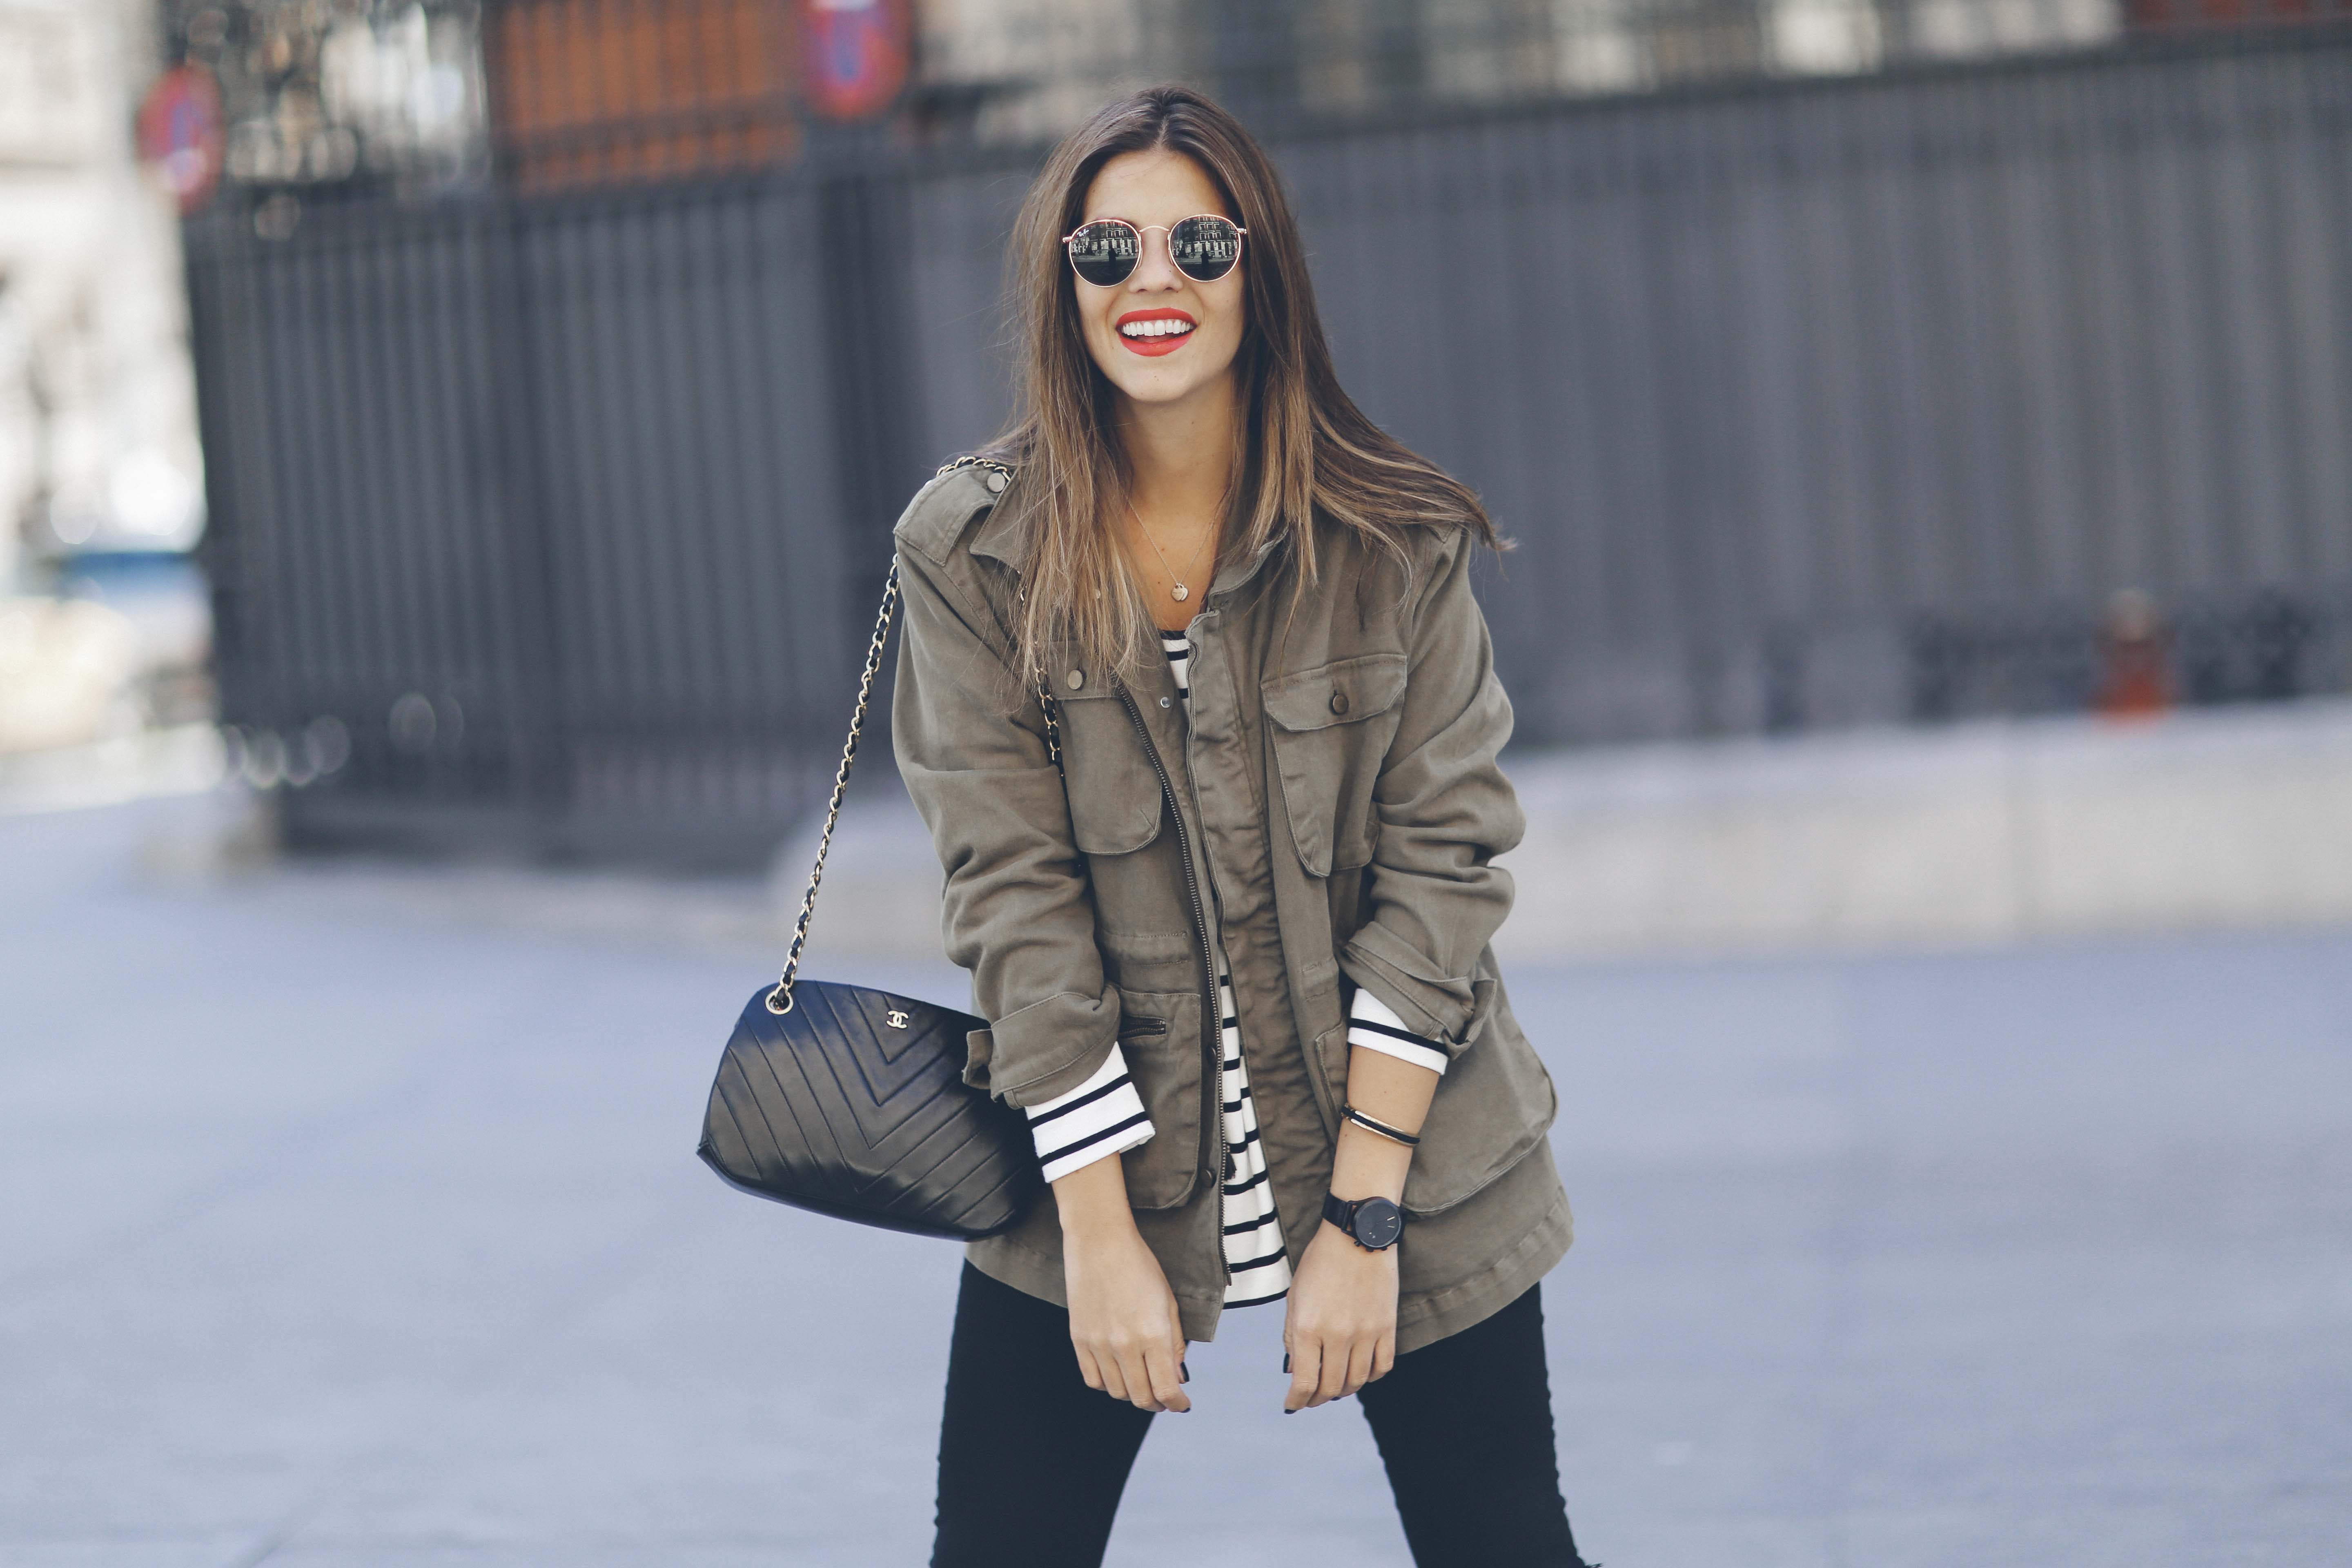 look-outfit-parka-jeans-rayas-zara-chanel-botas-anine_bing-spring-primavera_4